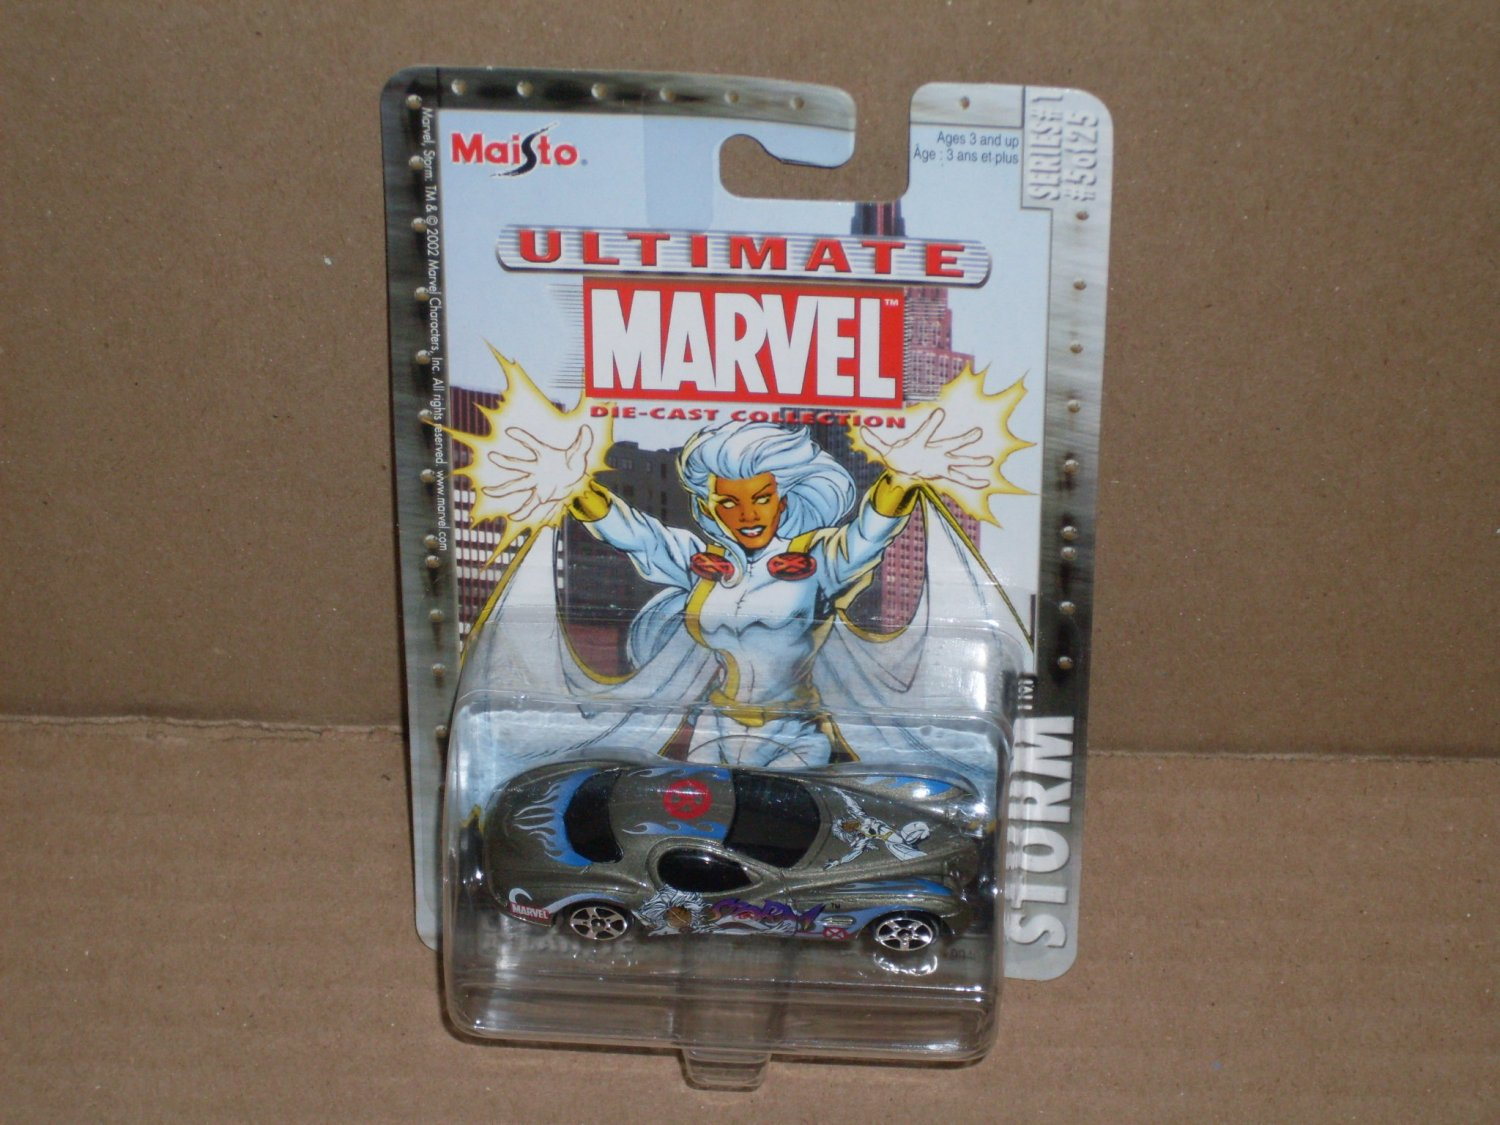 Maisto X-Mens Storm Ultimate Marvel Die Cast Collection (2002)